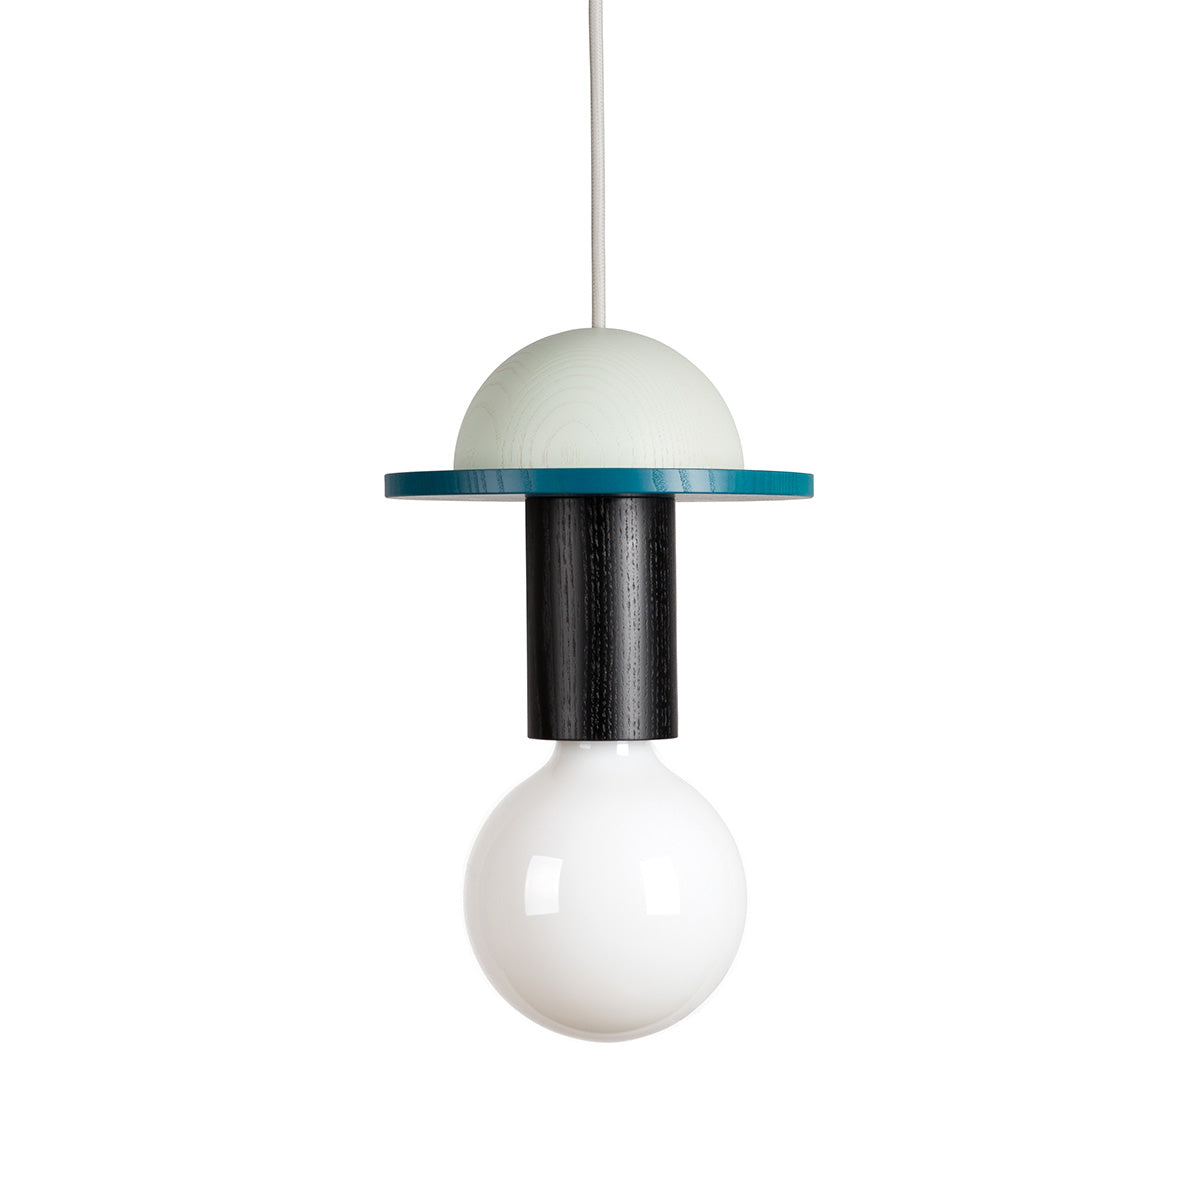 Schneid - Schneid Lighting - Schneid Junit Lamp Crescent - Julia Jessen - Modular Pendant Lamp - German Design - Lighting | Sustainable Living | Simple Design